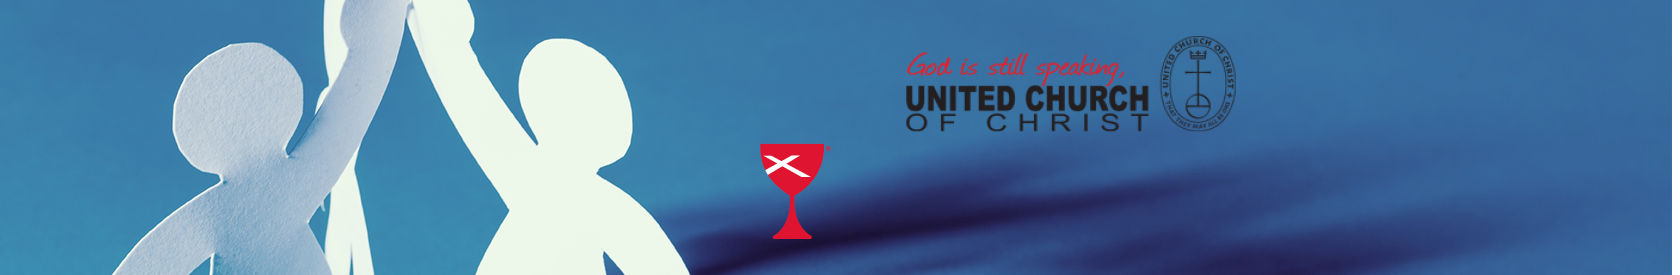 Full Communion with the United Church of Christ